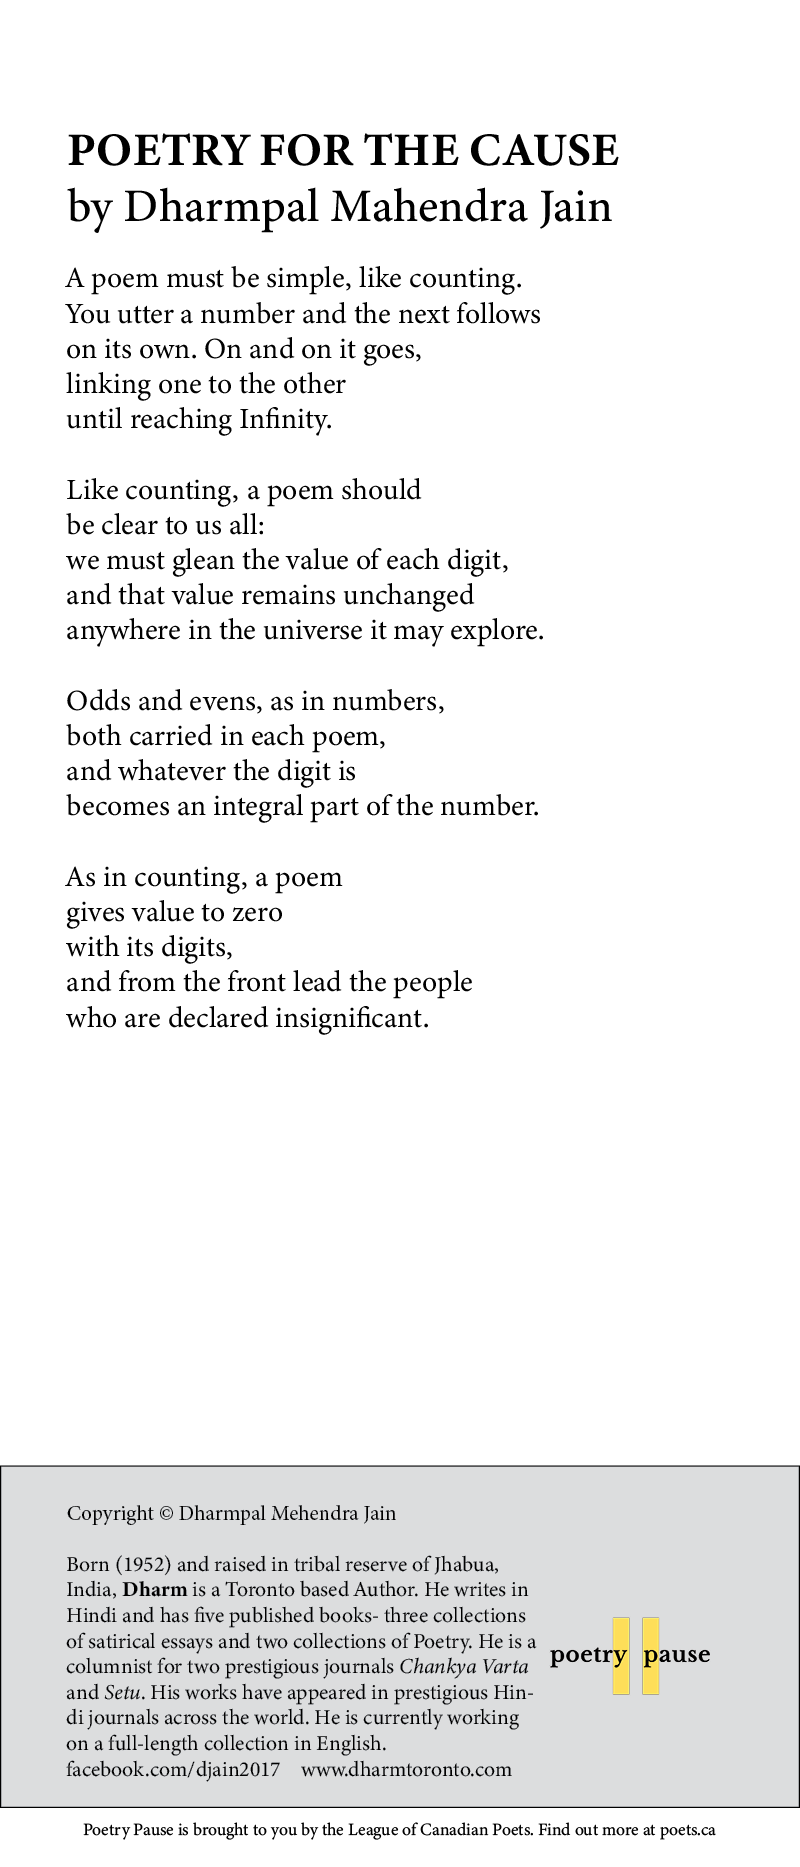 Poem Title: Poetry for the cause Poet Name: Dharmpal Mehendra Jain Poem: A poem must be simple, like counting. You utter a number and the next follows on its own. On and on it goes, linking one to the other until reaching Infinity. Like counting, a poem should be clear to us all: we must glean the value of each digit, and that value remains unchanged anywhere in the universe it may explore. Odds and evens, as in numbers, both carried in each poem, and whatever the digit is becomes an integral part of the number. As in counting, a poem gives value to zero with its digits, and from the front lead the people who are declared insignificant. End of poem. Credits: Copyright © Dharmpal Mehendra Jain Born (1952) and raised in tribal reserve of Jhabua, India, Dharm is a Toronto based Author. He writes in Hindi and has five published books- three collections of satirical essays and two collections of Poetry. He is a columnist for two prestigious journals Chankya Varta and Setu. His works have appeared in prestigious Hindi journals across the world. He is currently working on a full-length collection in English. facebook.com/djain2017 www.dharmtoronto.com